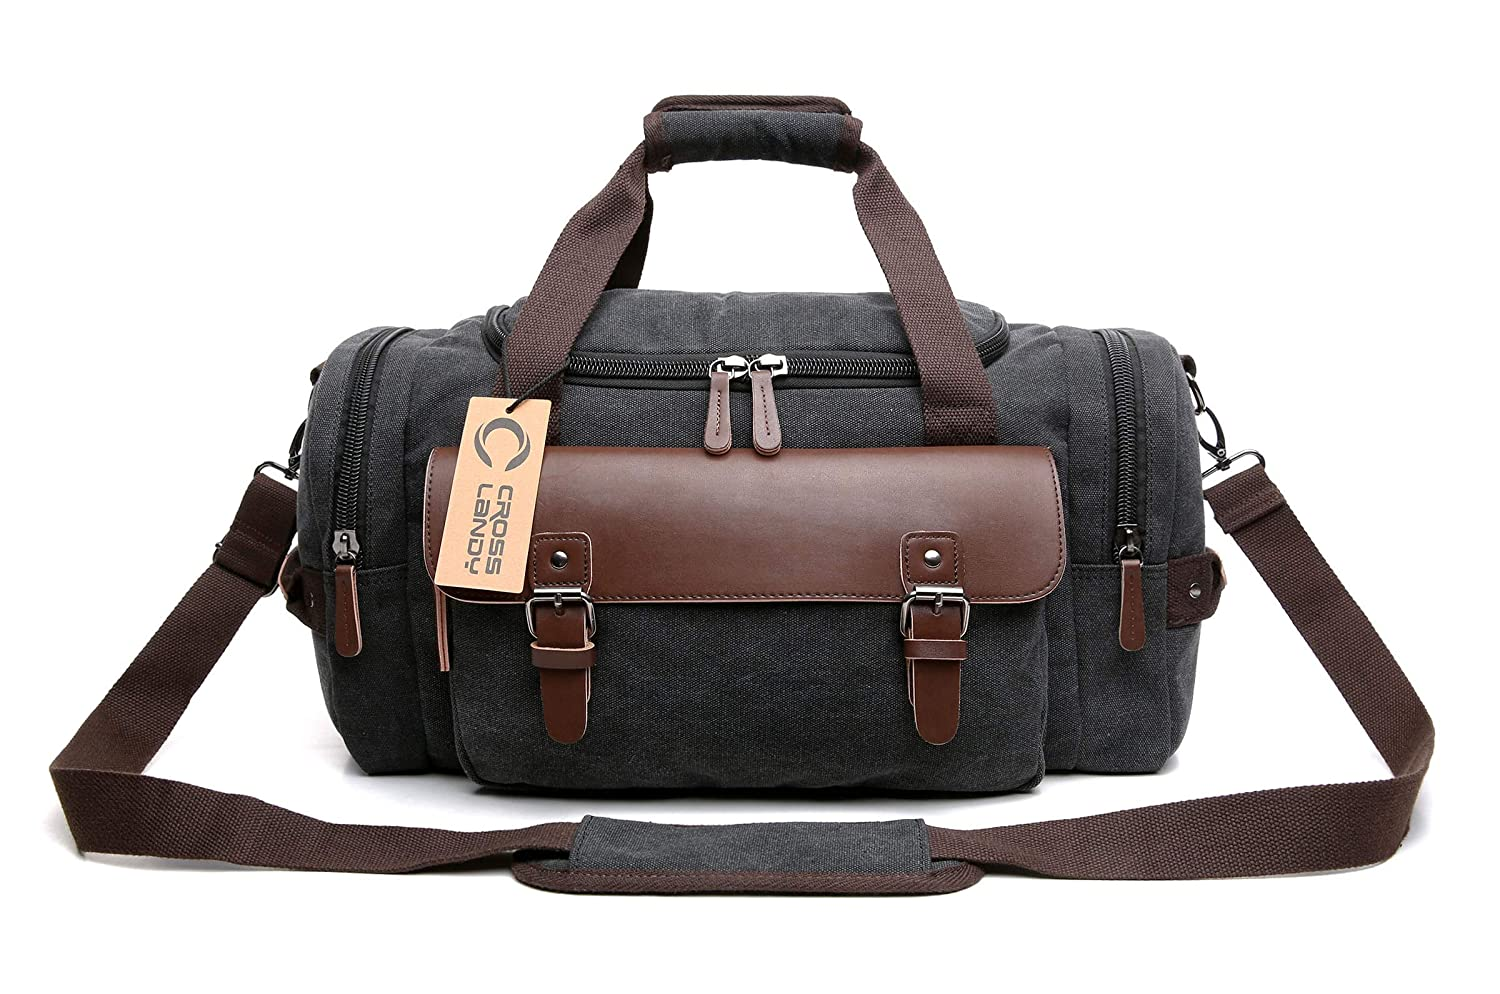 c255e13dcc9 Amazon.com   CrossLandy Canvas Gym Bag for Men Women Leather Overnight Bag  Travel Carry on Duffel Sports Weekend Tote Bags   Sports Duffels